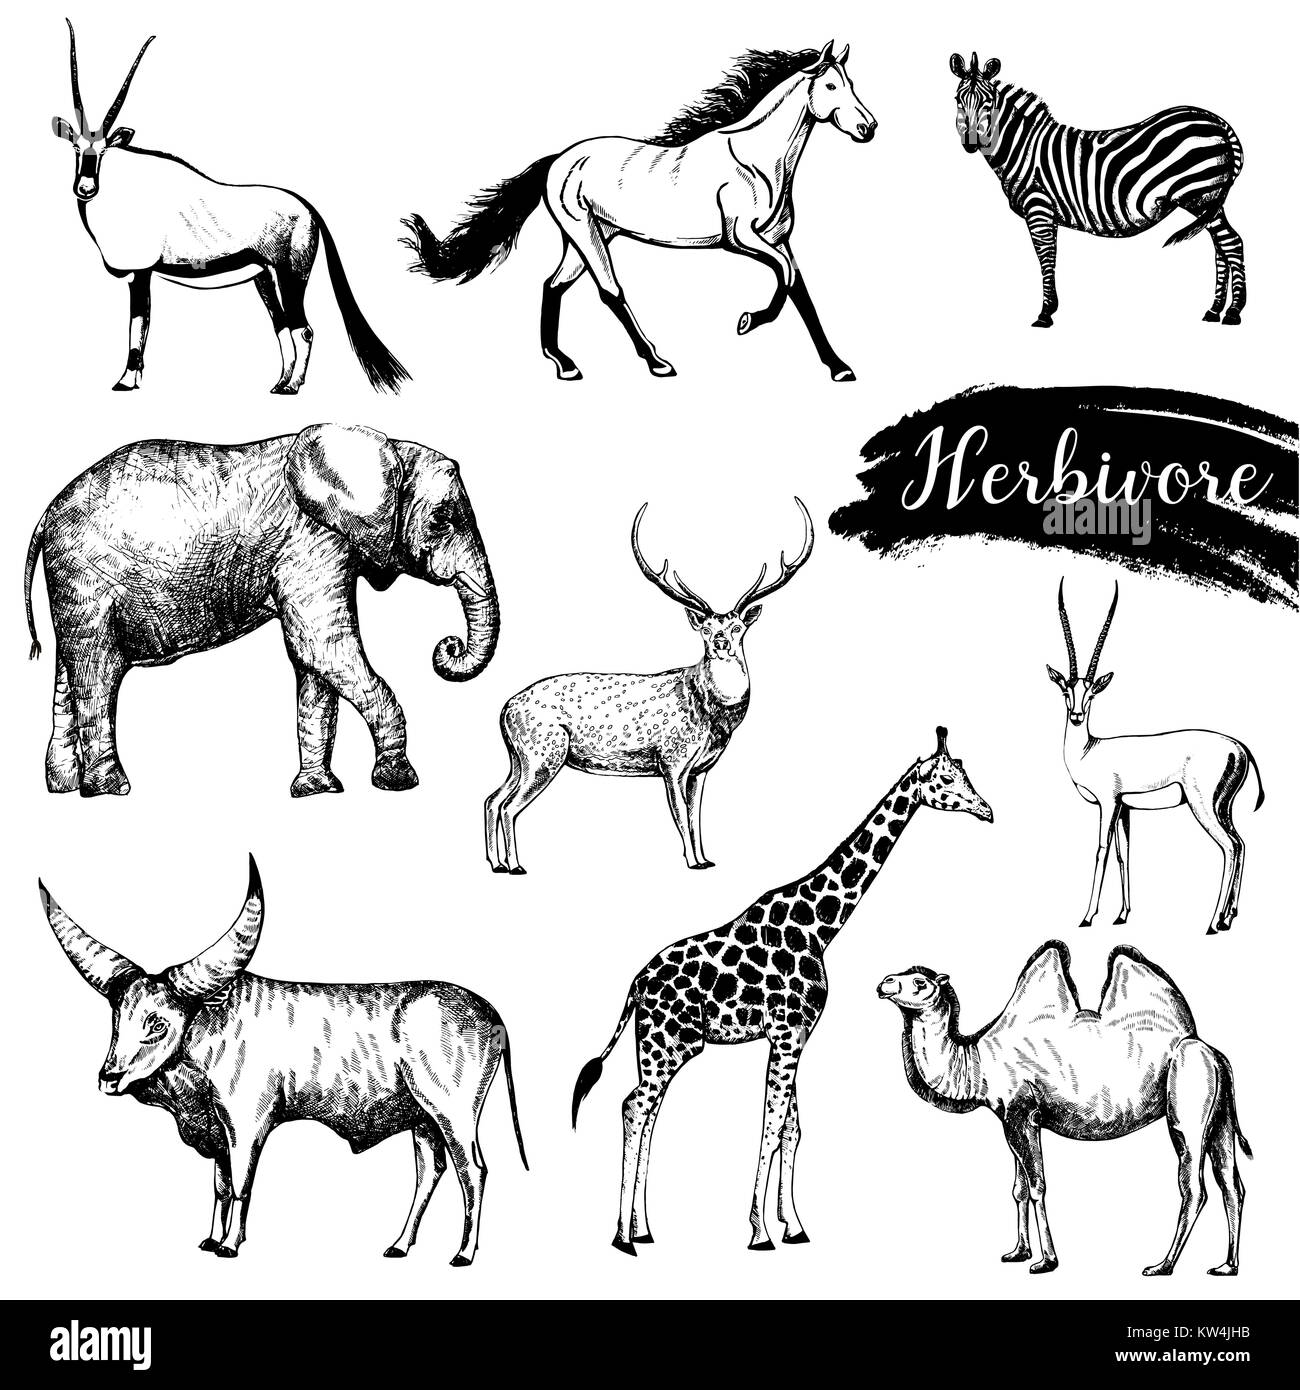 Set of sketch style hand drawn herbivore animals. Vector illustration isolated on white background. - Stock Vector